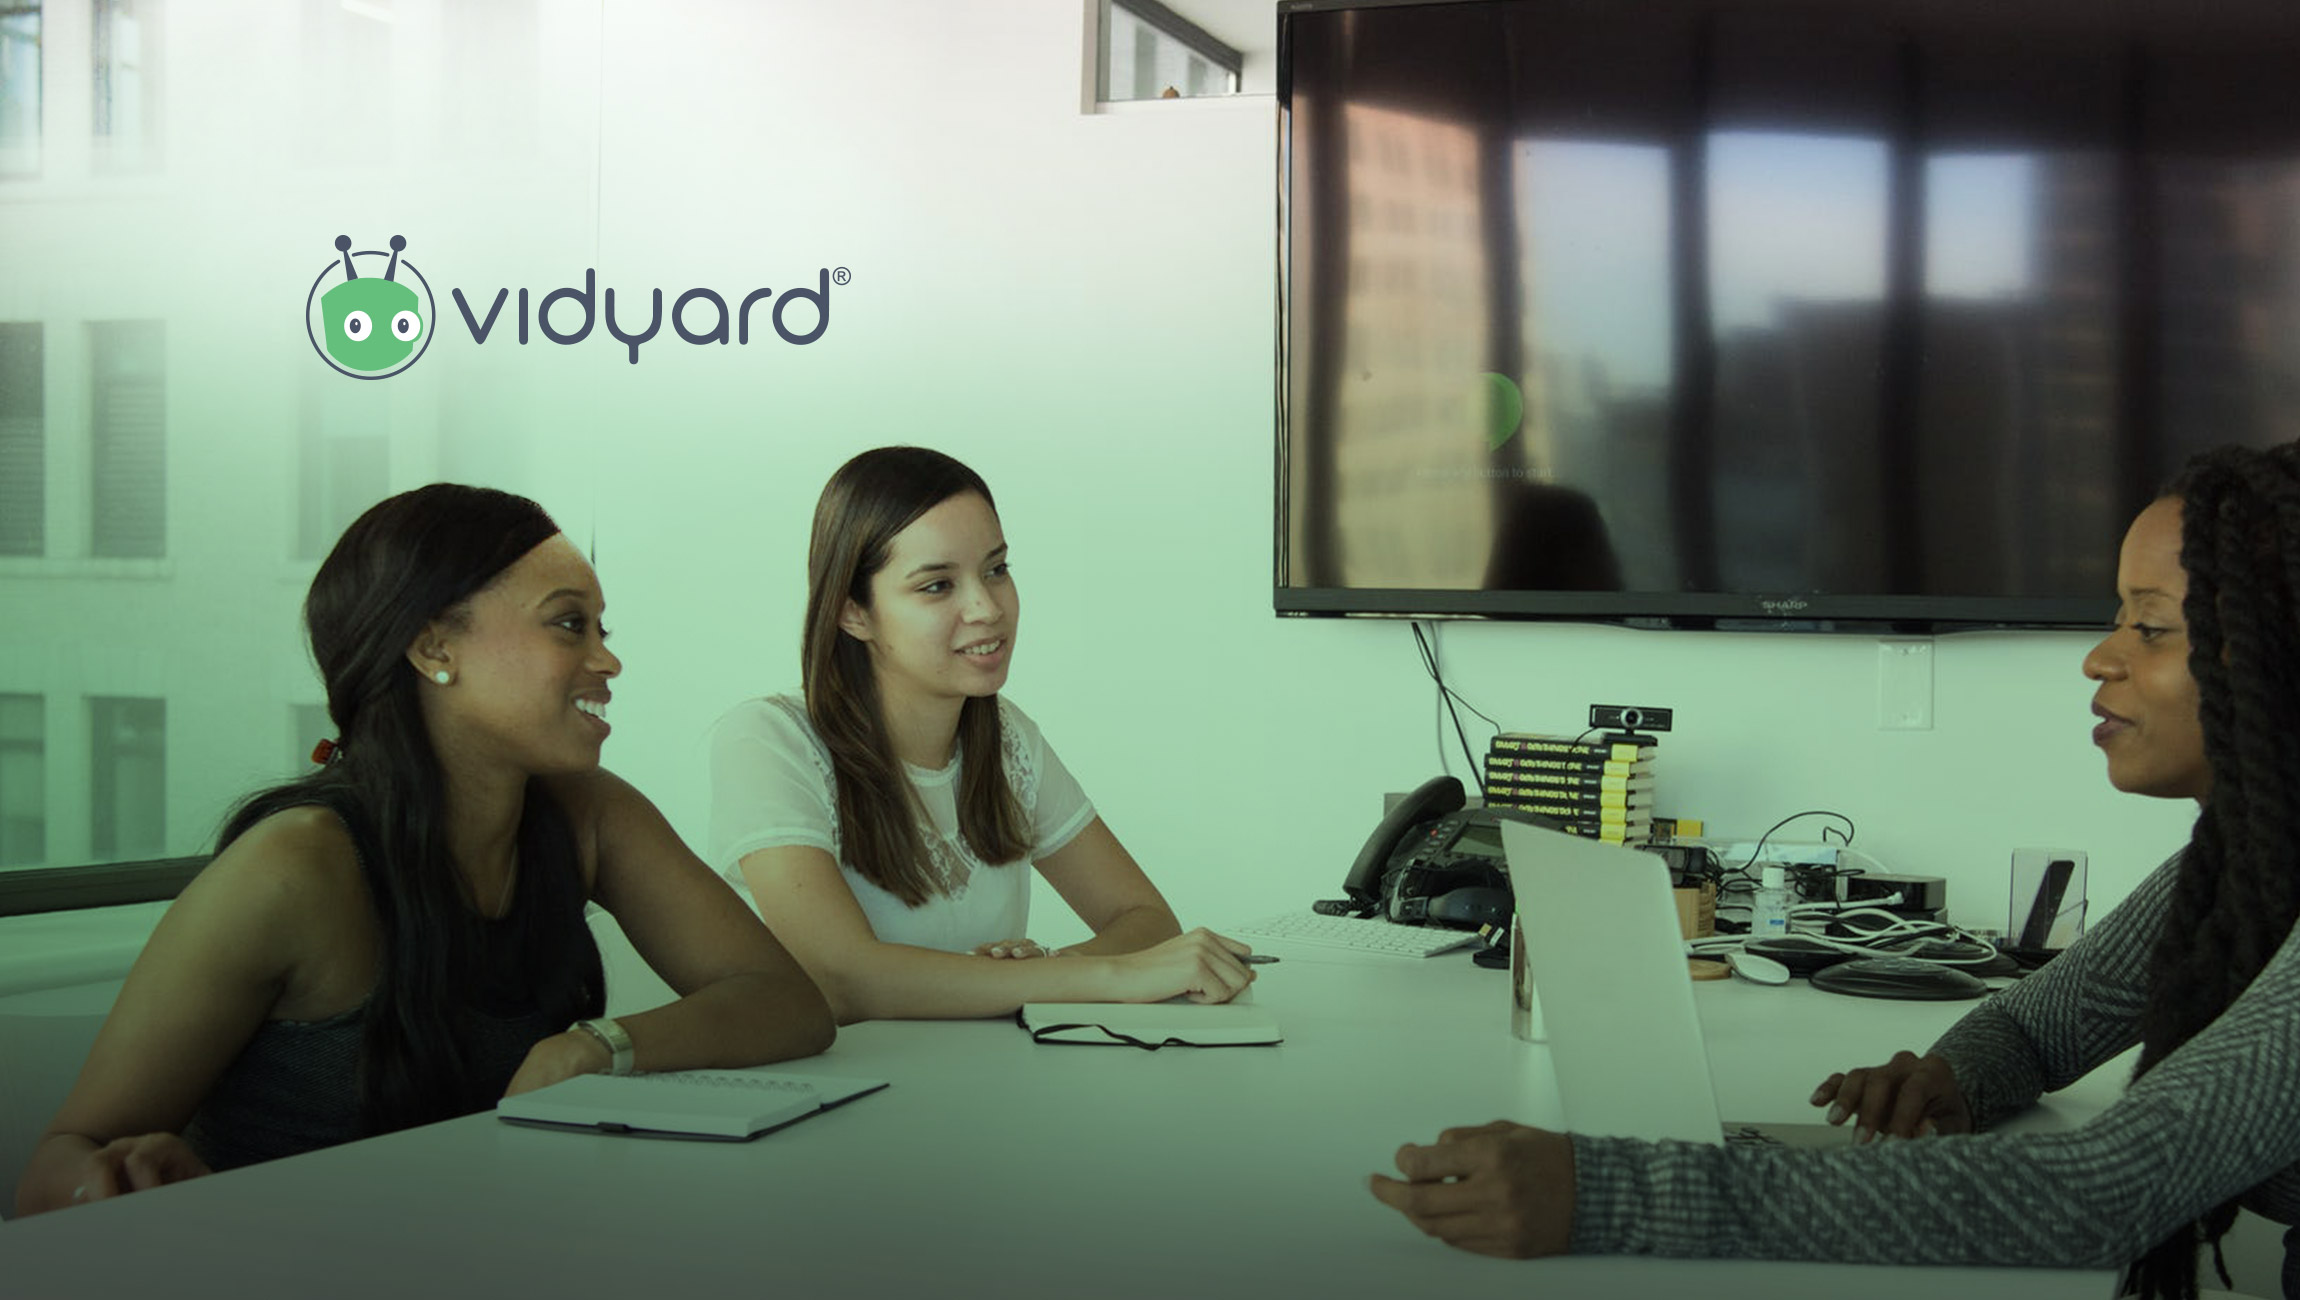 InsideSales.com and Other Leading Sales Platforms Select Vidyard GoVideo to Power One-to-One Video Messaging